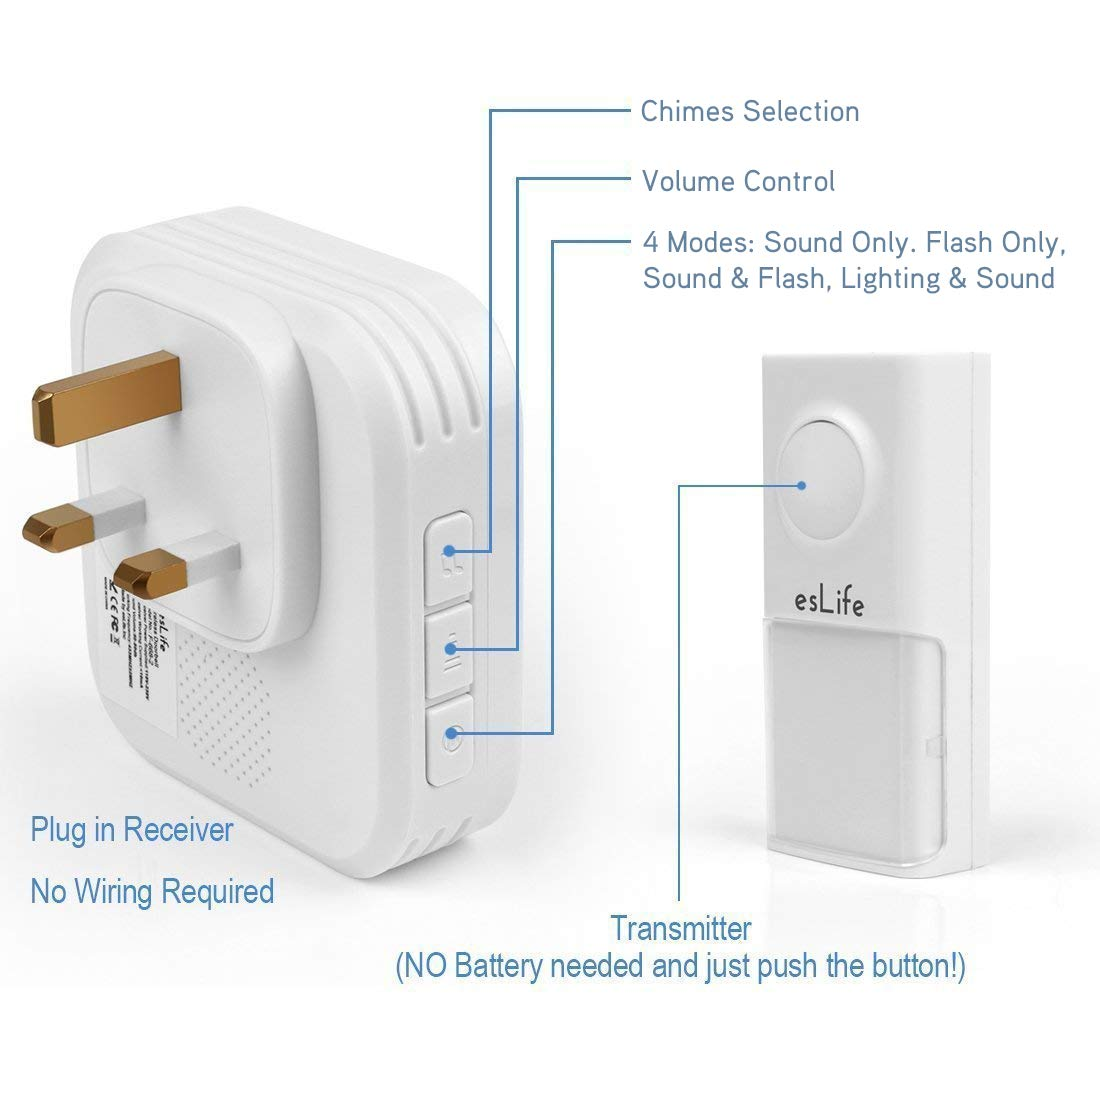 No Battery Required Wireless Doorbell 1 Push Buttonself Generating Couk O View Topic Led Stair Lights Require Wiring In Series Power With 2 Wall Plug Receivers Ip55 Waterproof Door Bell 58 Chimes Kit